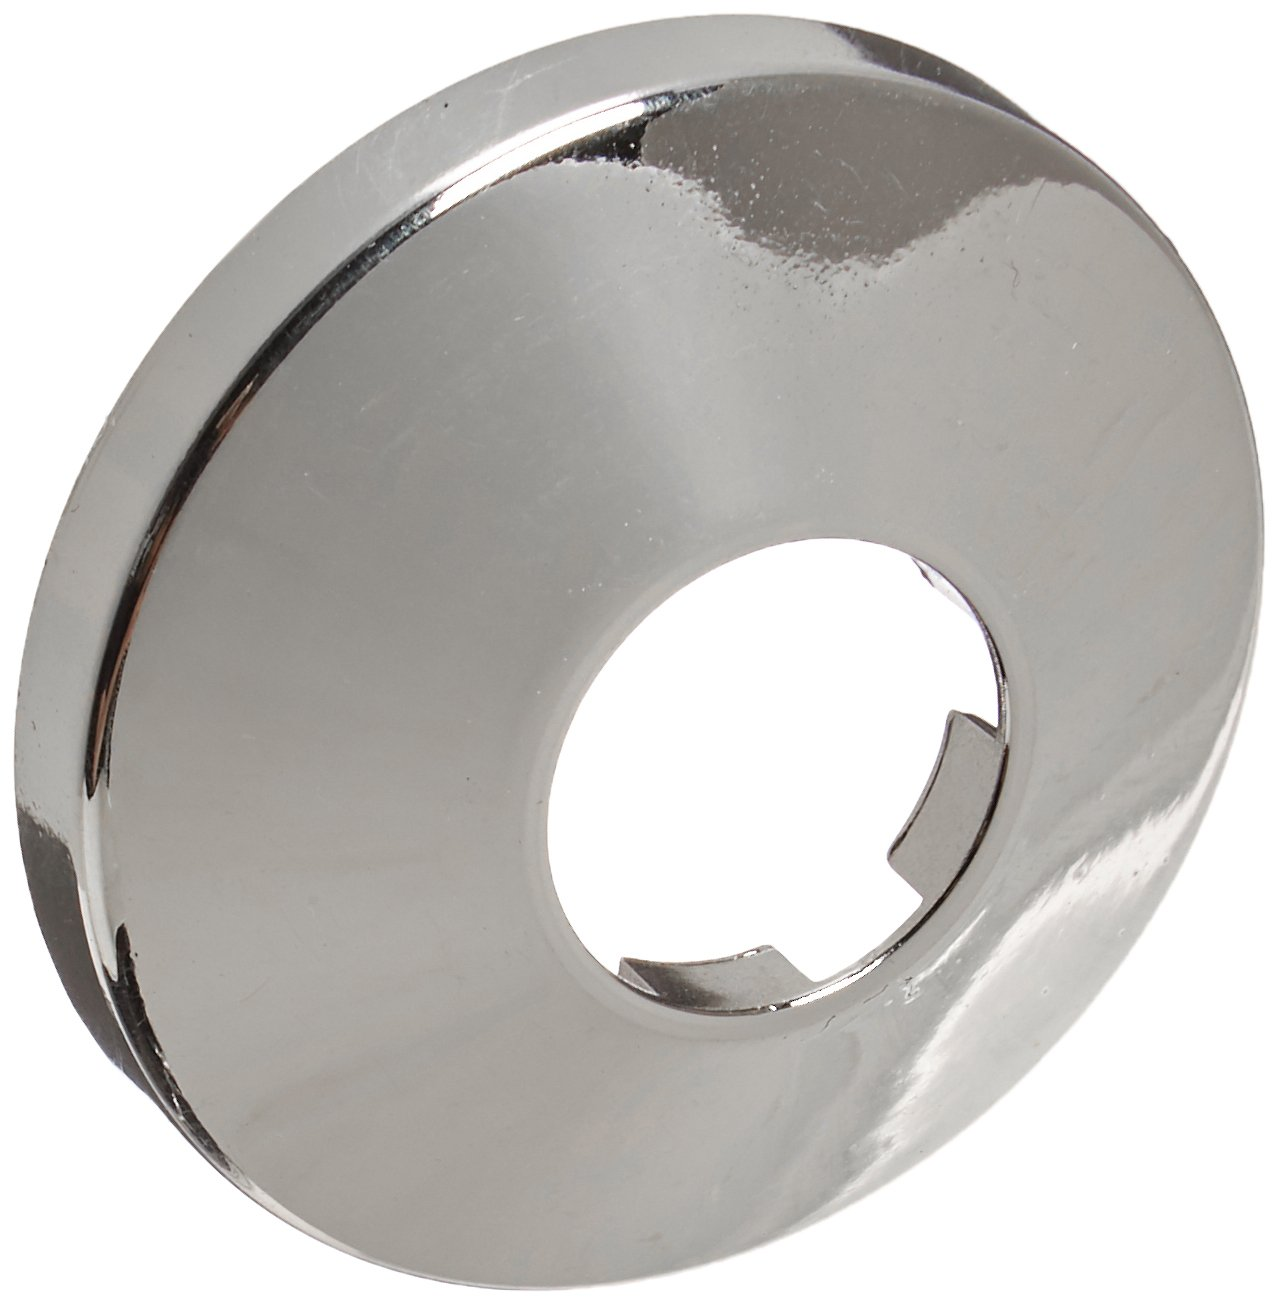 Rohl 1120EPN Sliding Adjustable Escutcheon 2 3/8'' Diameter for 1120 12 & 20 Shower Arms & 1140/5 Shower Arms,Polished Nickel